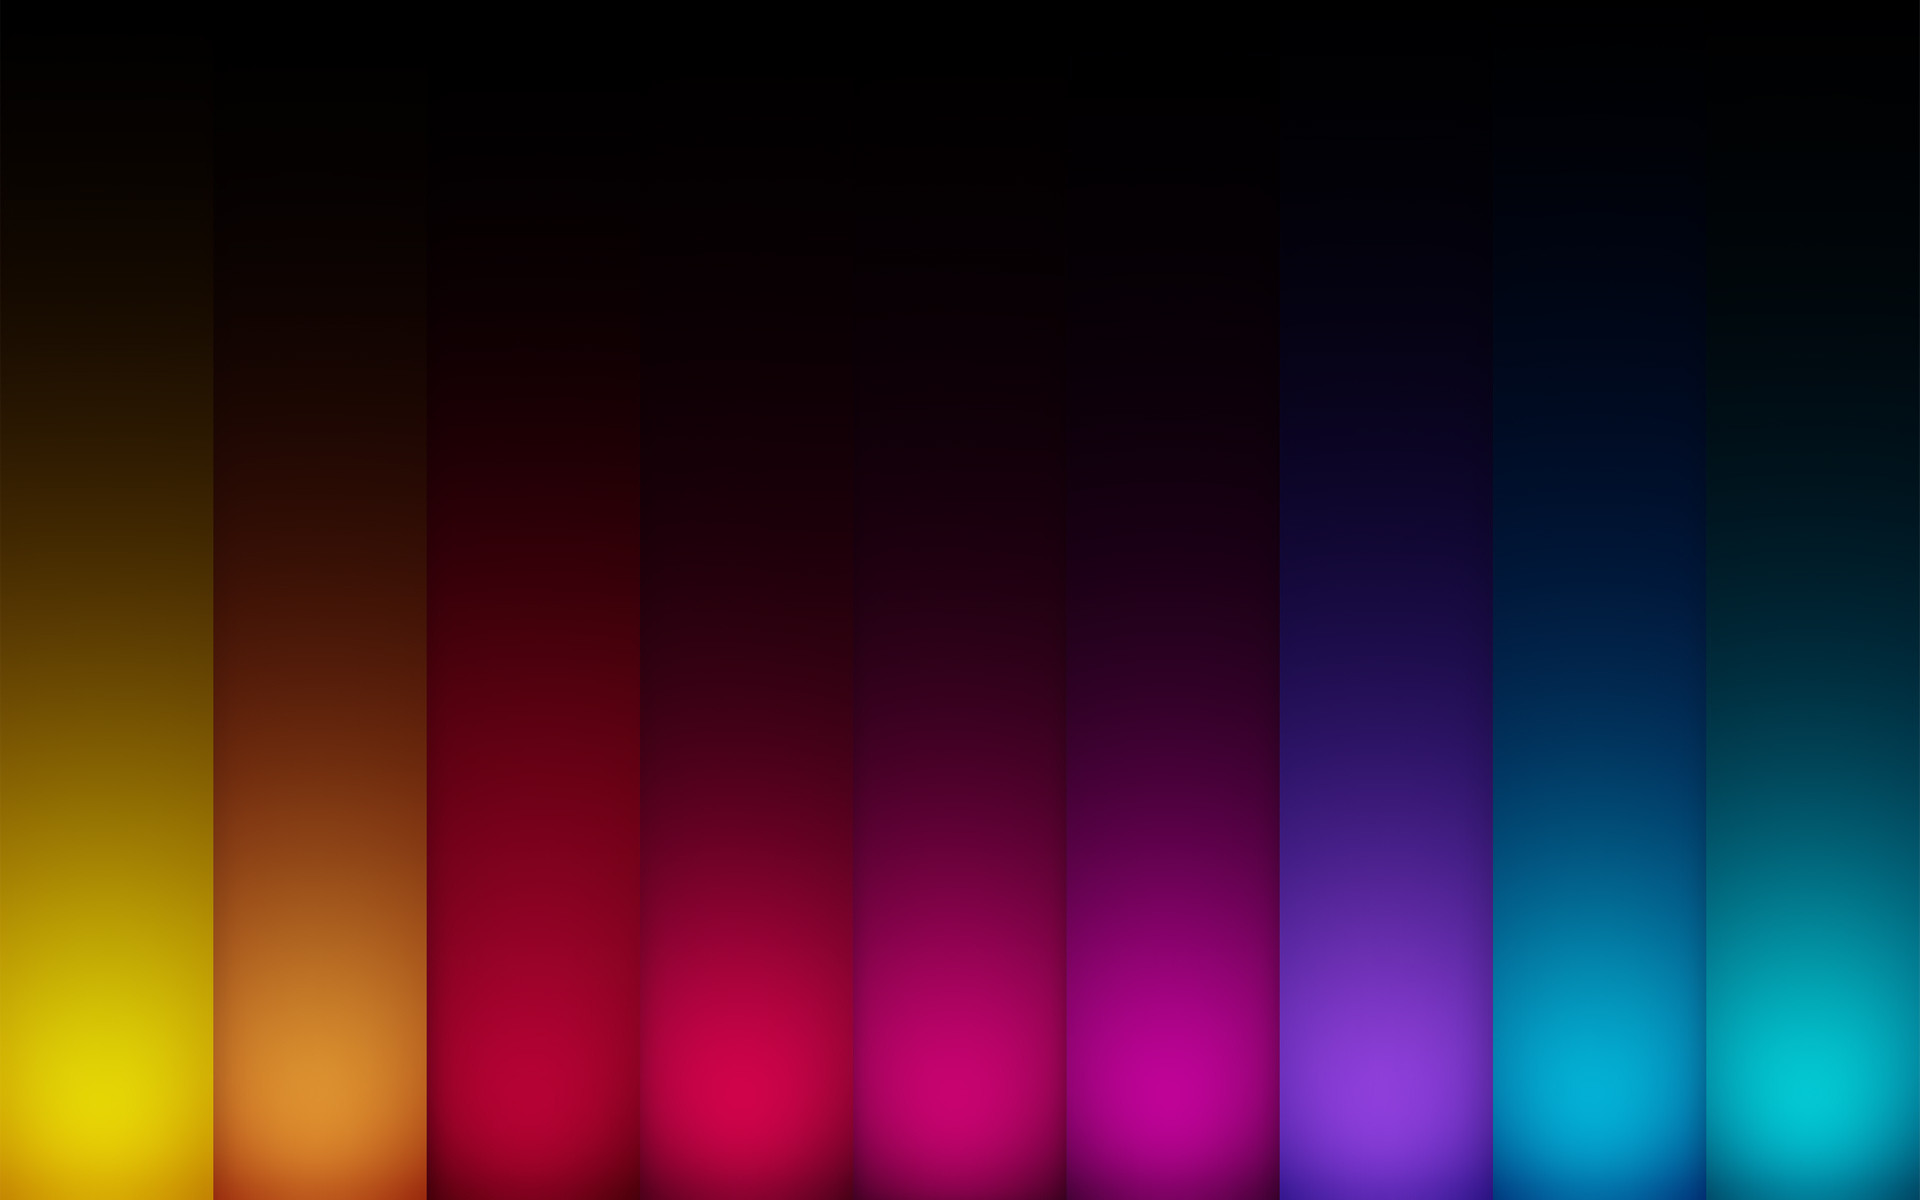 … Yellow-Blue Gradient Wallpaper by Winsord